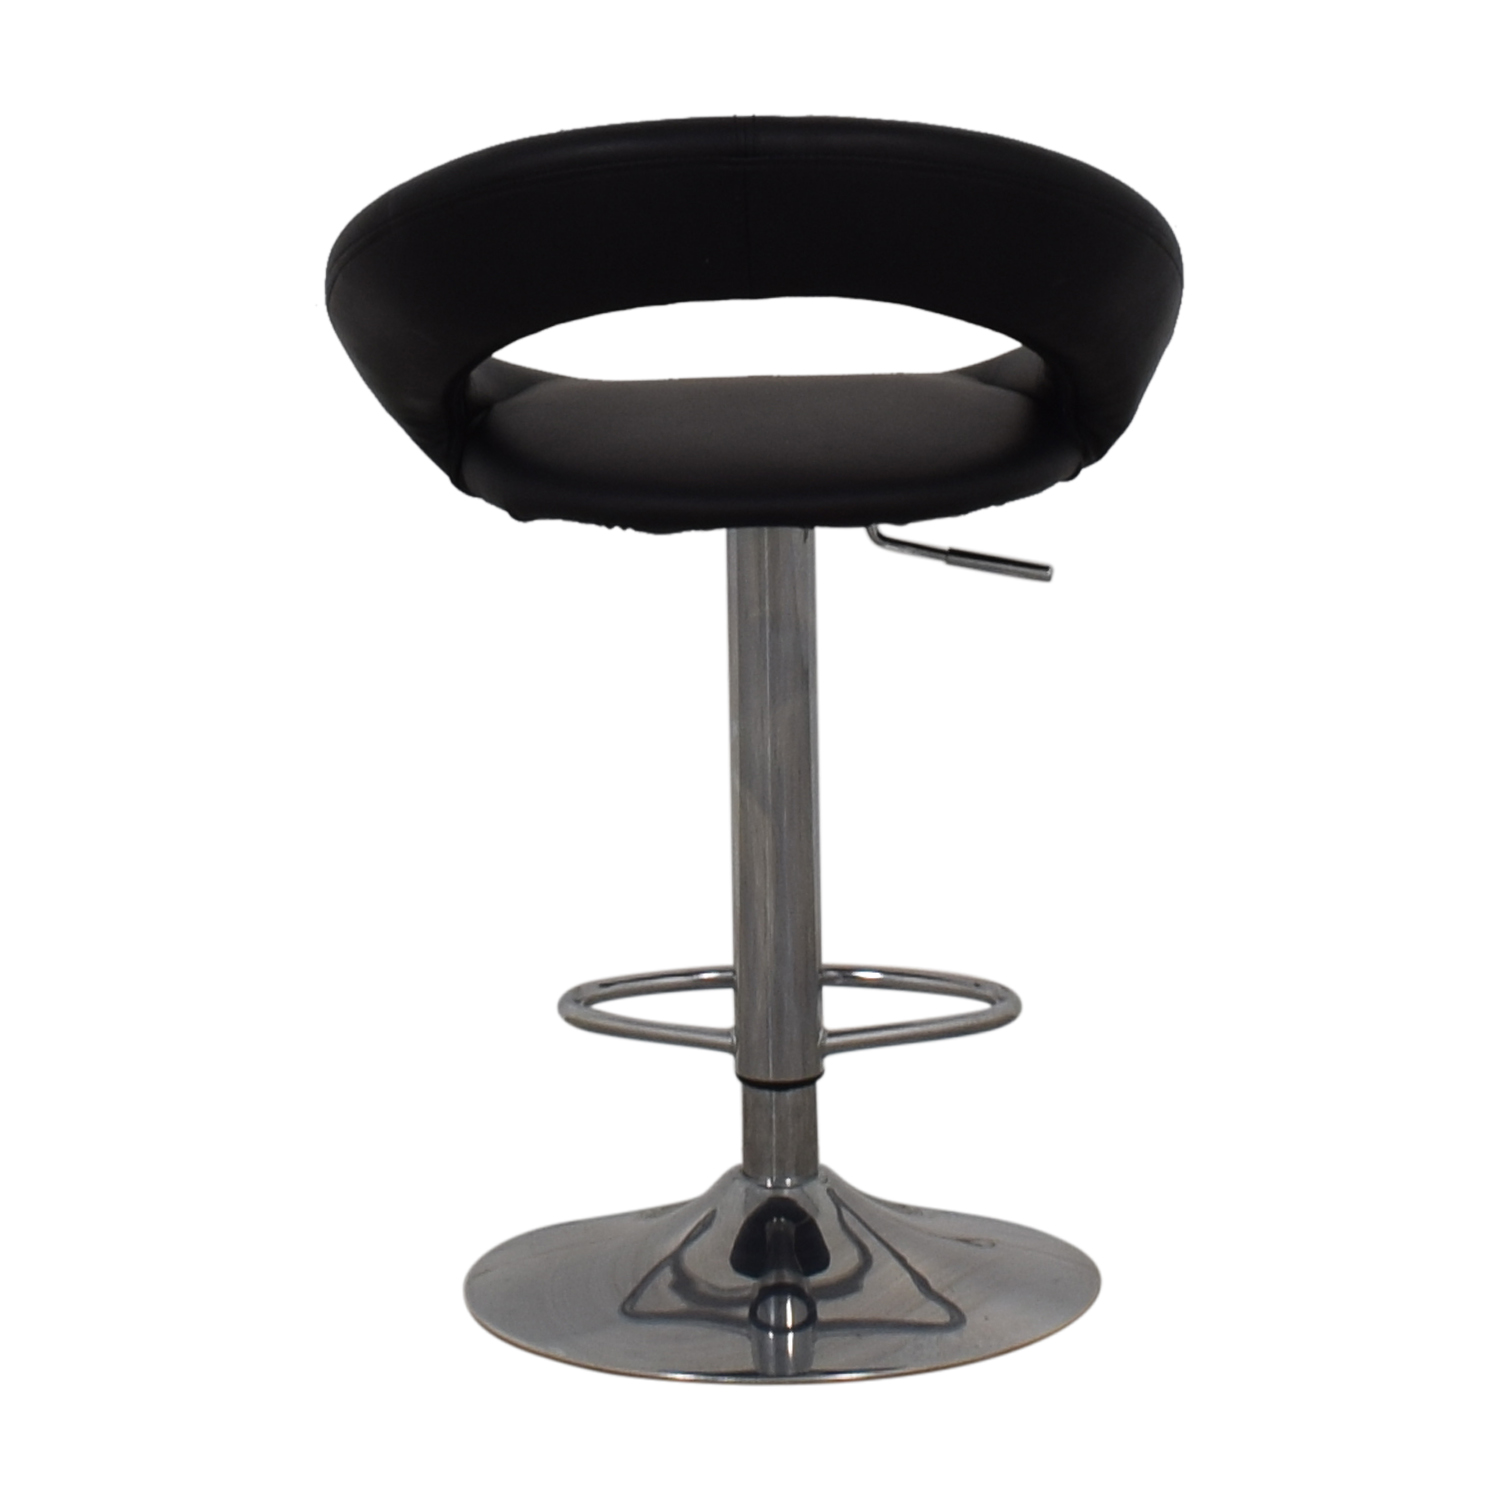 chair stool black dining room covers made to order 63 off lumisource kathleen bar chairs for sale